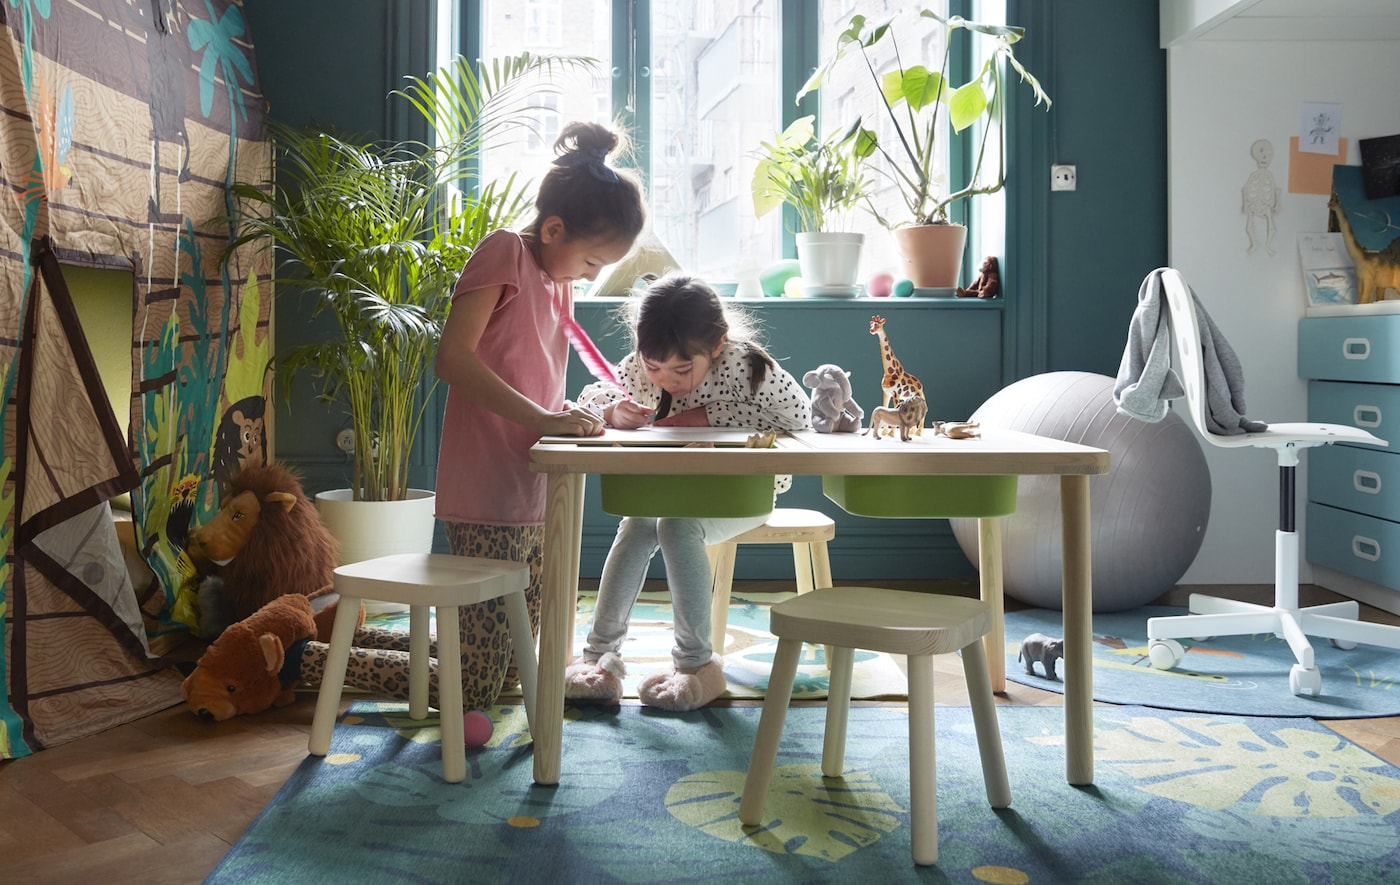 Two children drawing on a children's IKEA table  in a playroom.